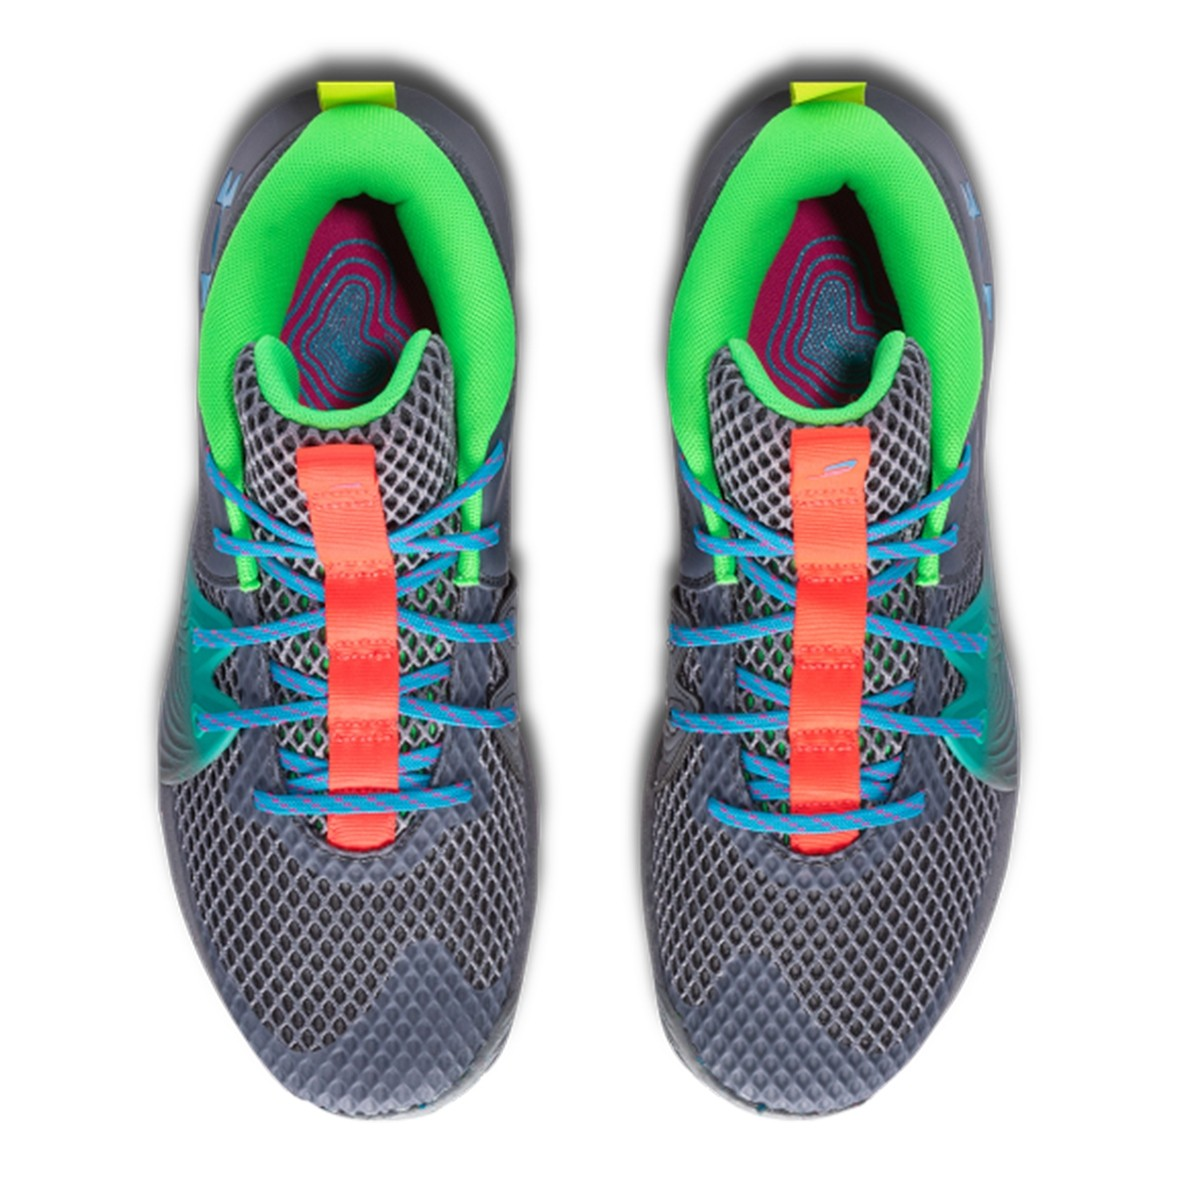 Under Armour Embiid One 'Gamer Tag'-3024114-106